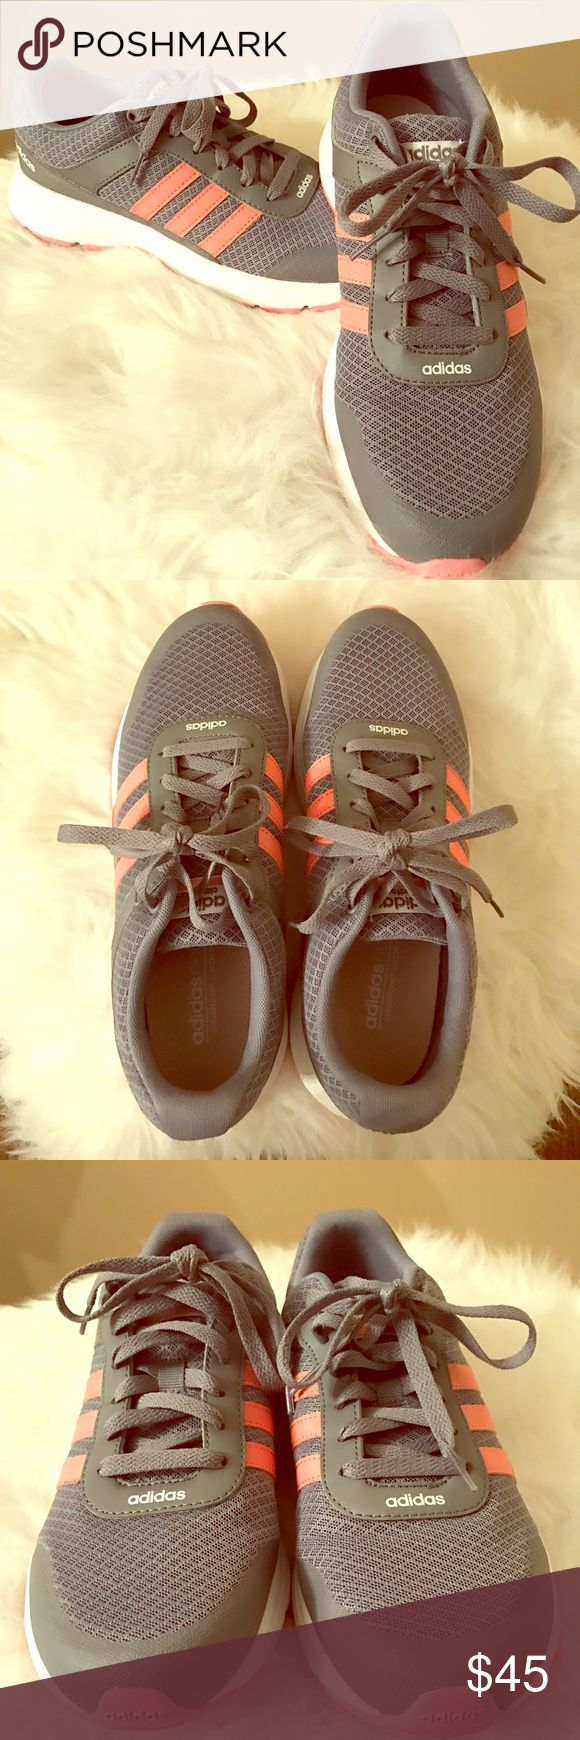 Adidas neo sneakers Adidas neo sneakers pink and gray, size 9 worn once Adidas Shoes Sneakers